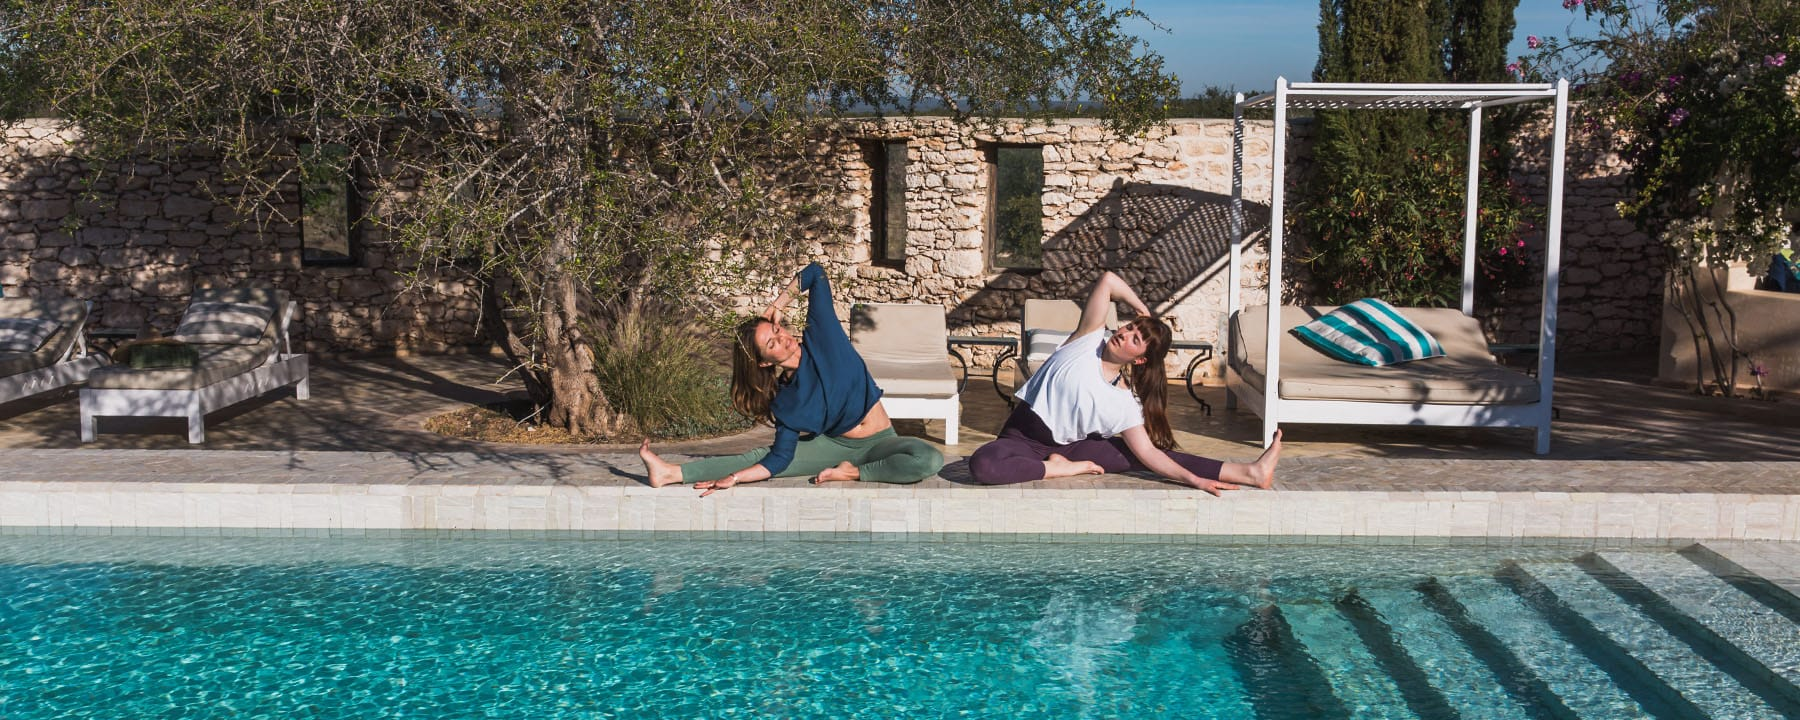 NOSADE Yoga Retreat Kai Hill_Source Luderwaldt Photography for NOSADE